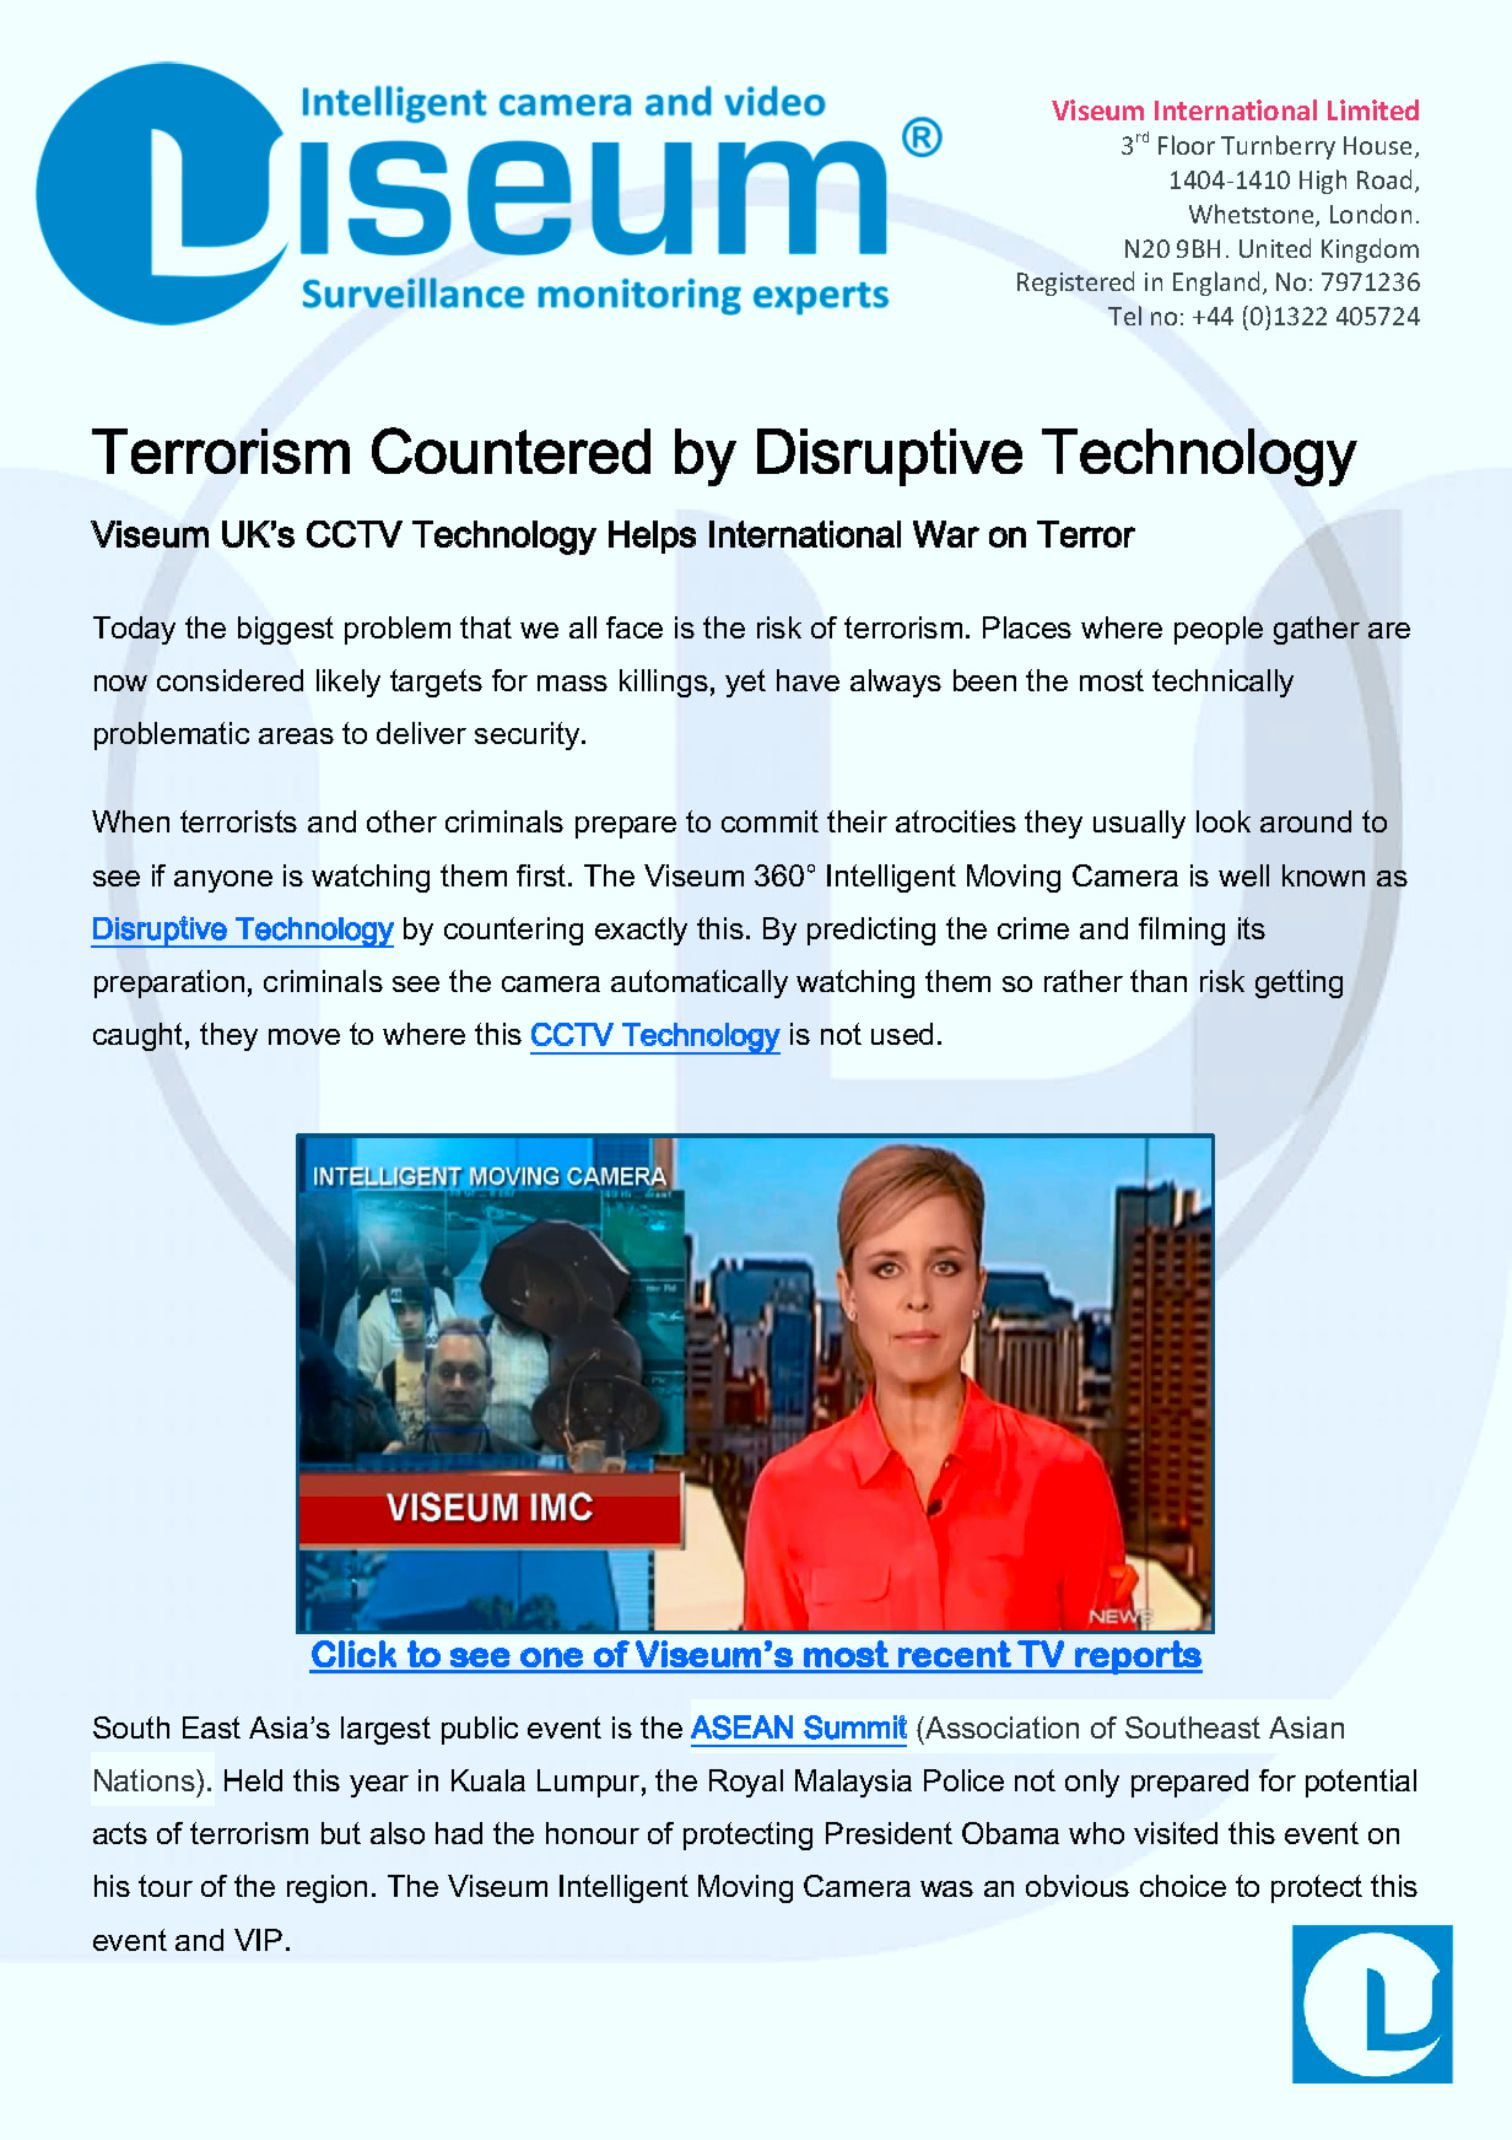 terrorism-countered-by-disruptive-technology_Page_1